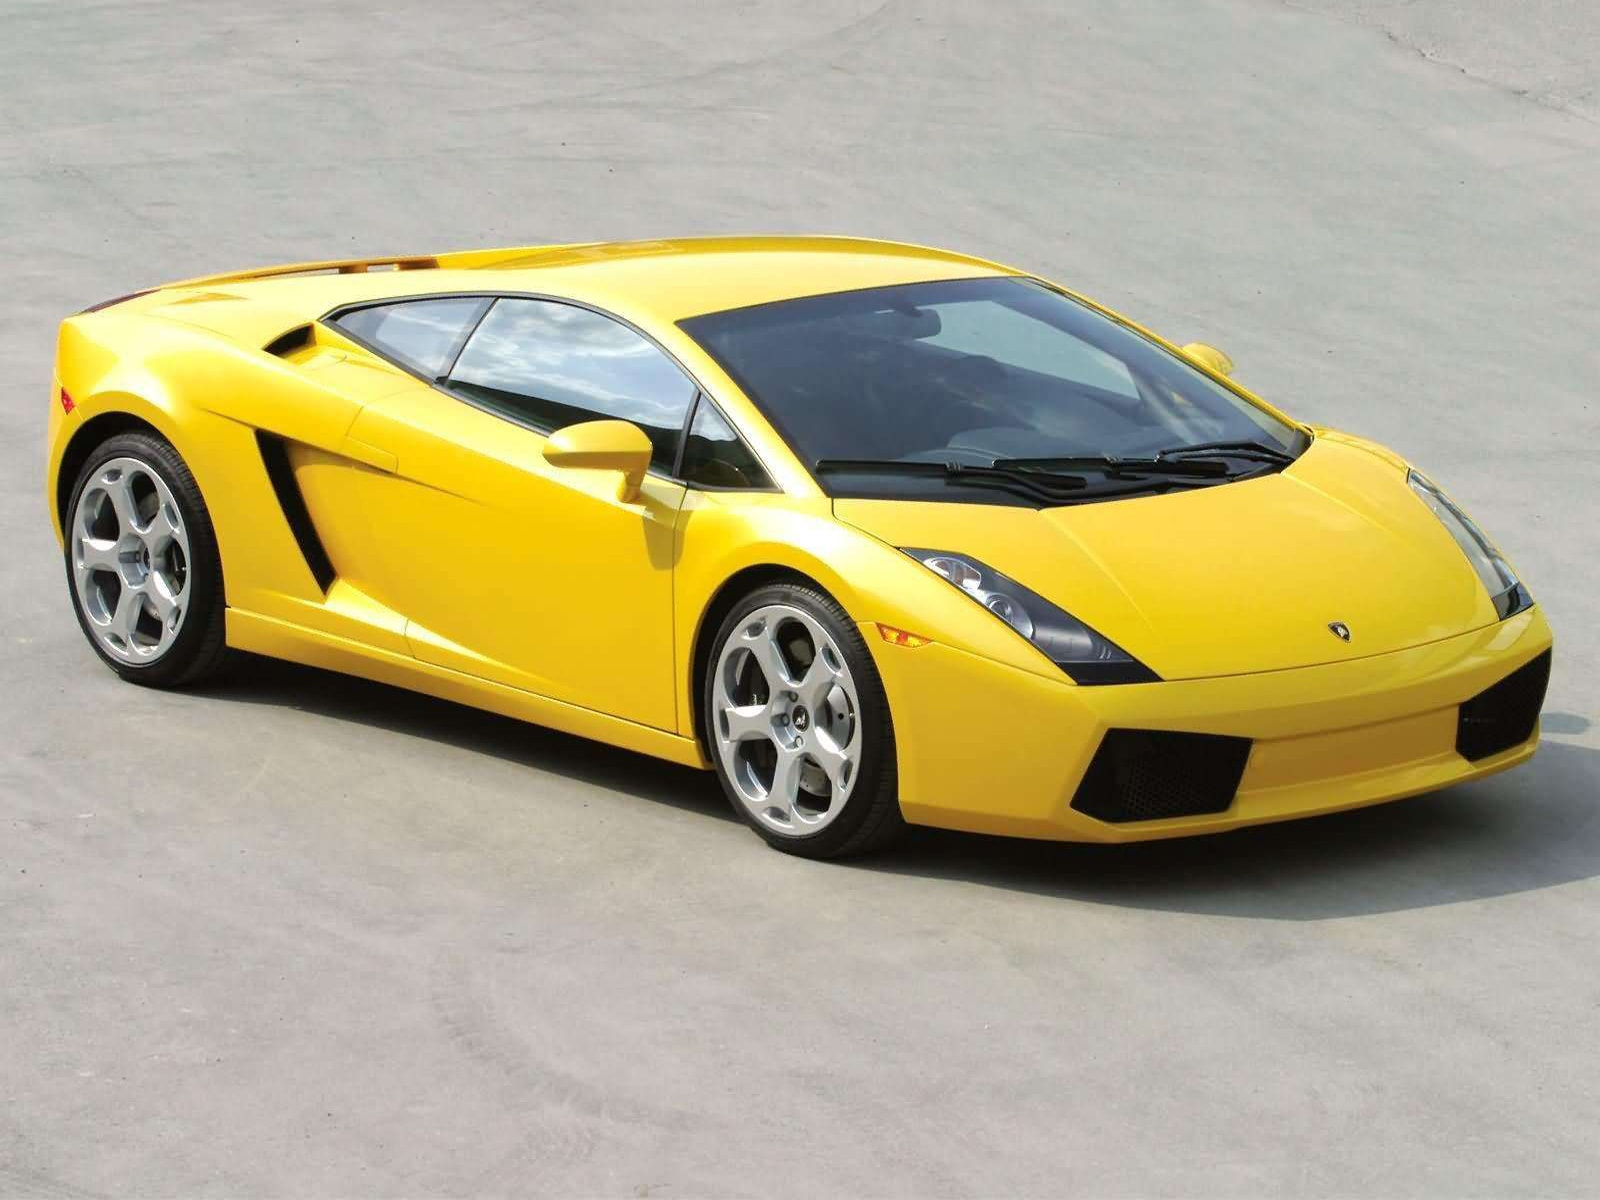 2003 Lamborghini Gallardo HQ wallpapers